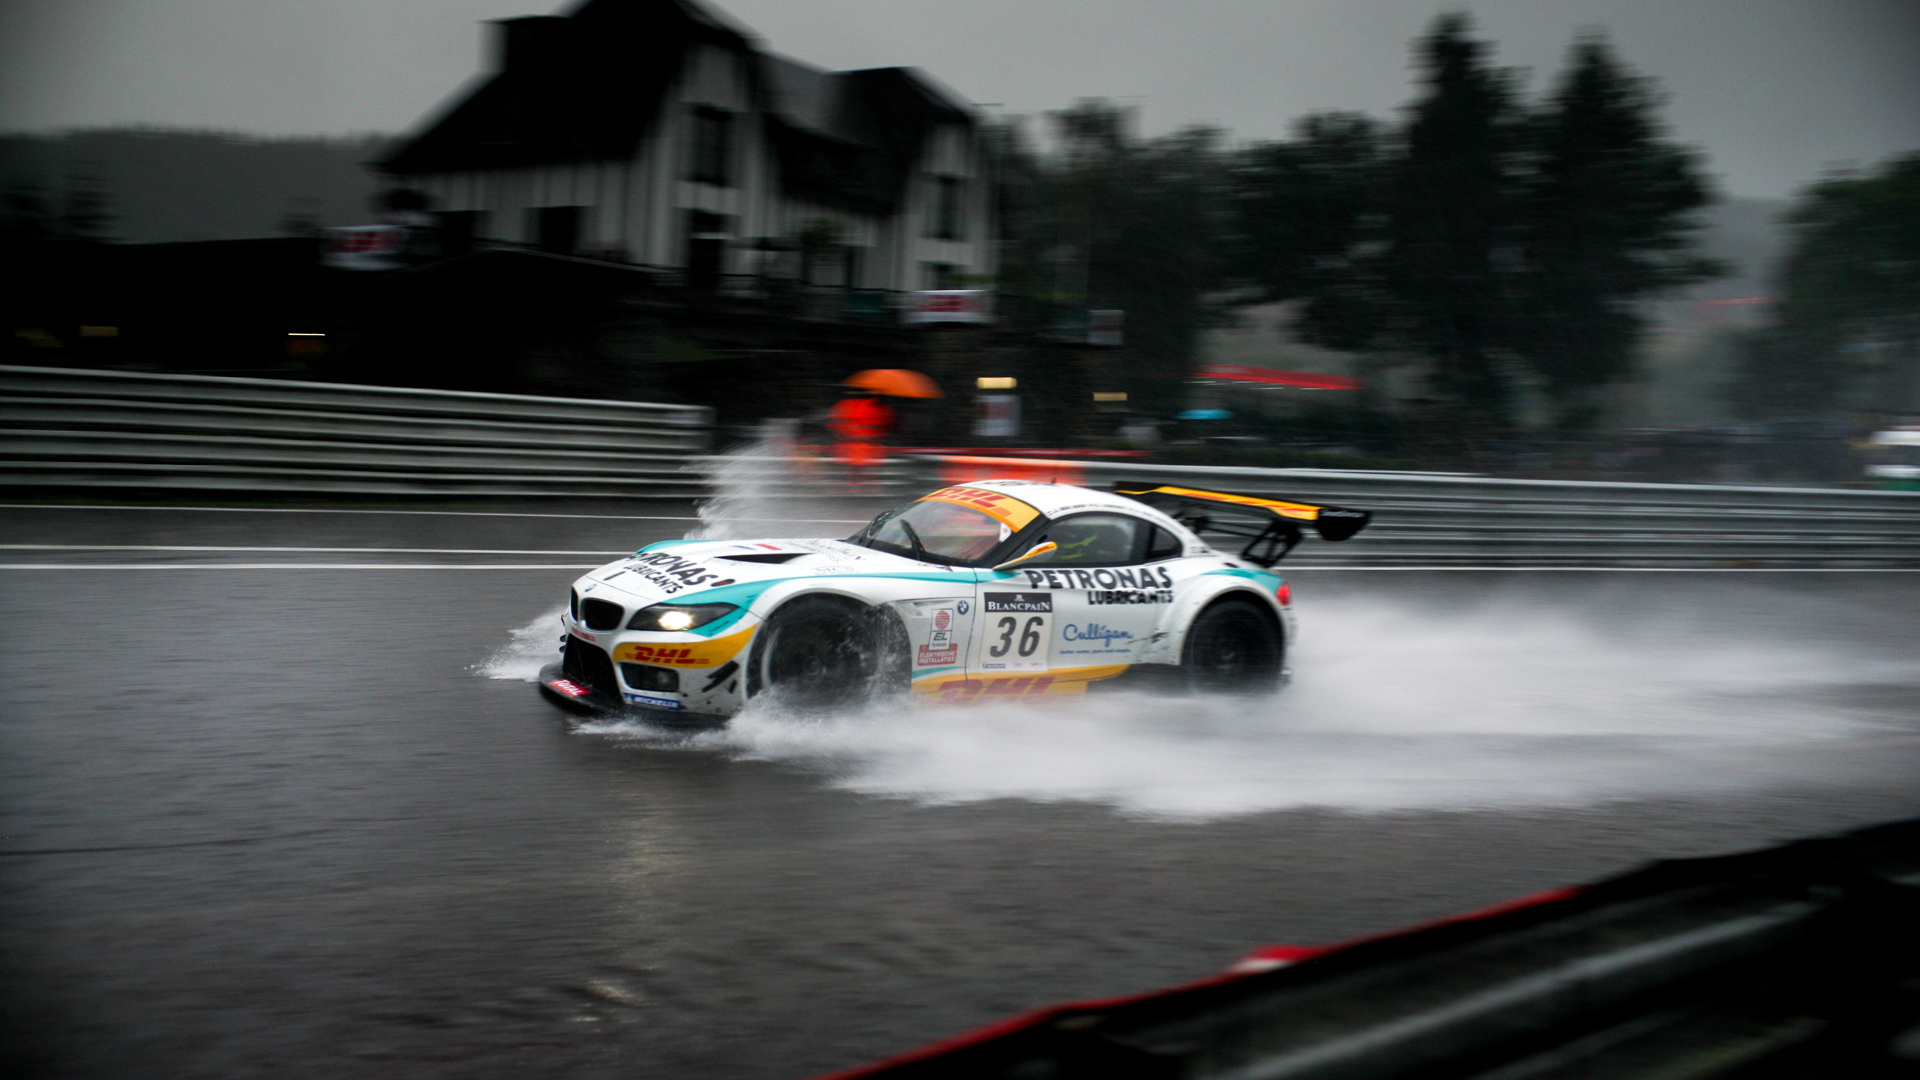 BMW Rain Race Wallpaper HD Car Wallpapers 1920x1080